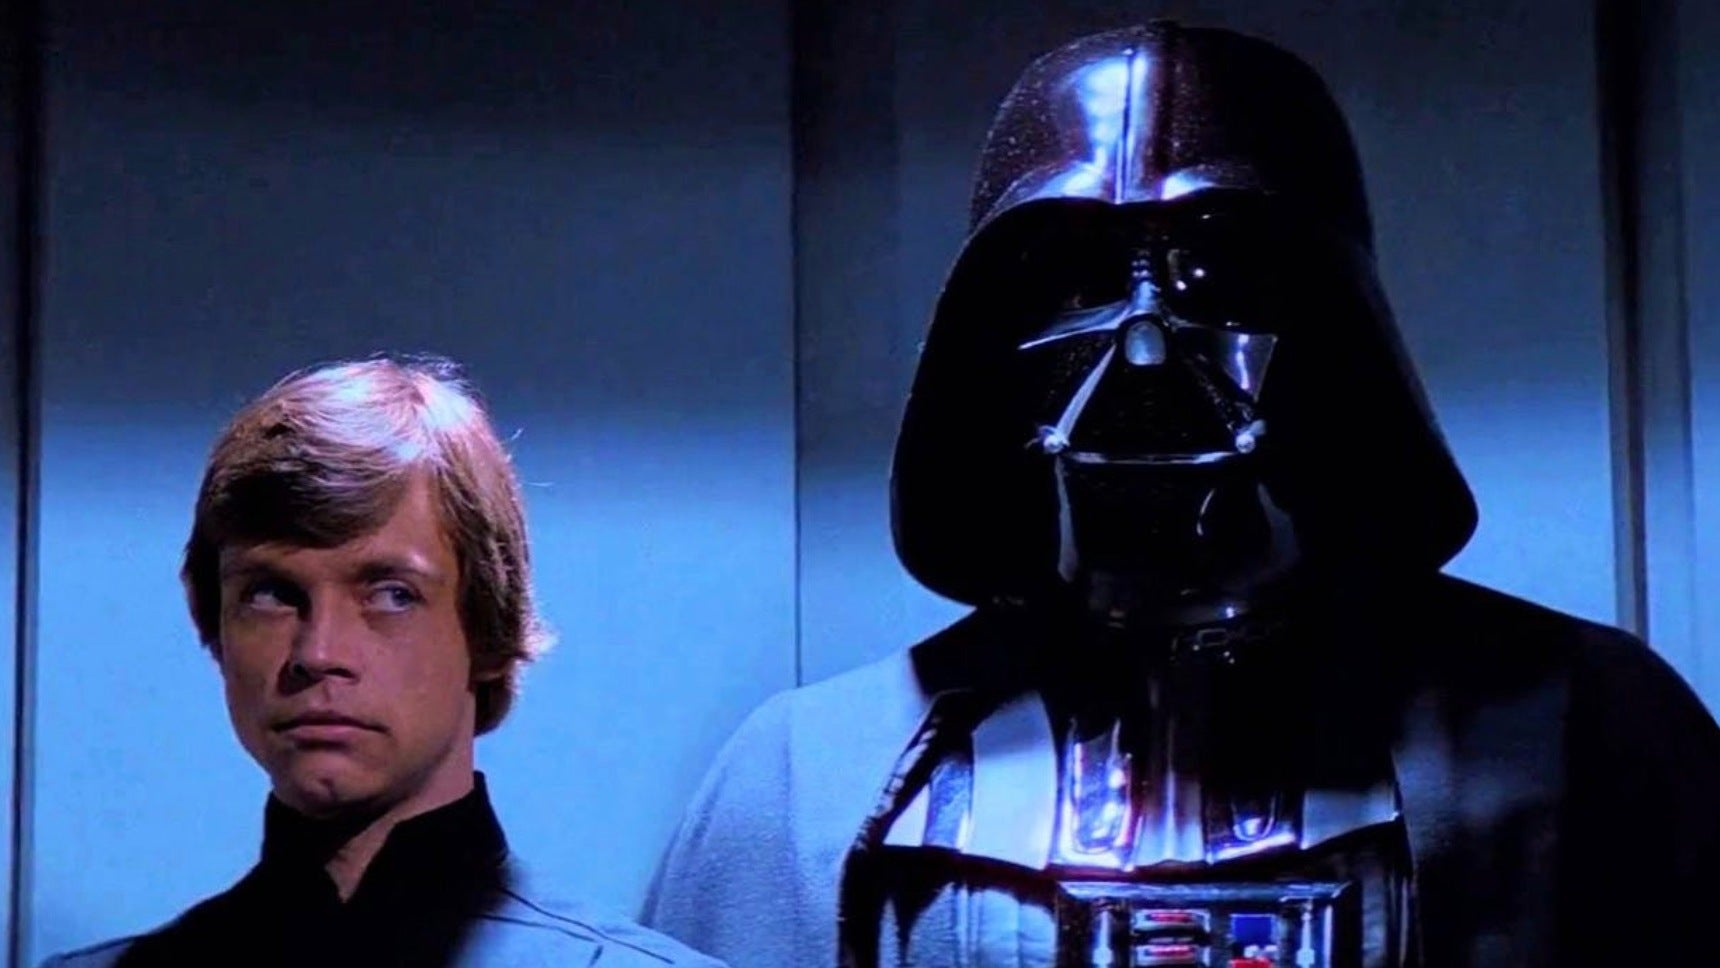 It's Hard To Imagine Star Wars Without The Skywalker Family Or The Empire